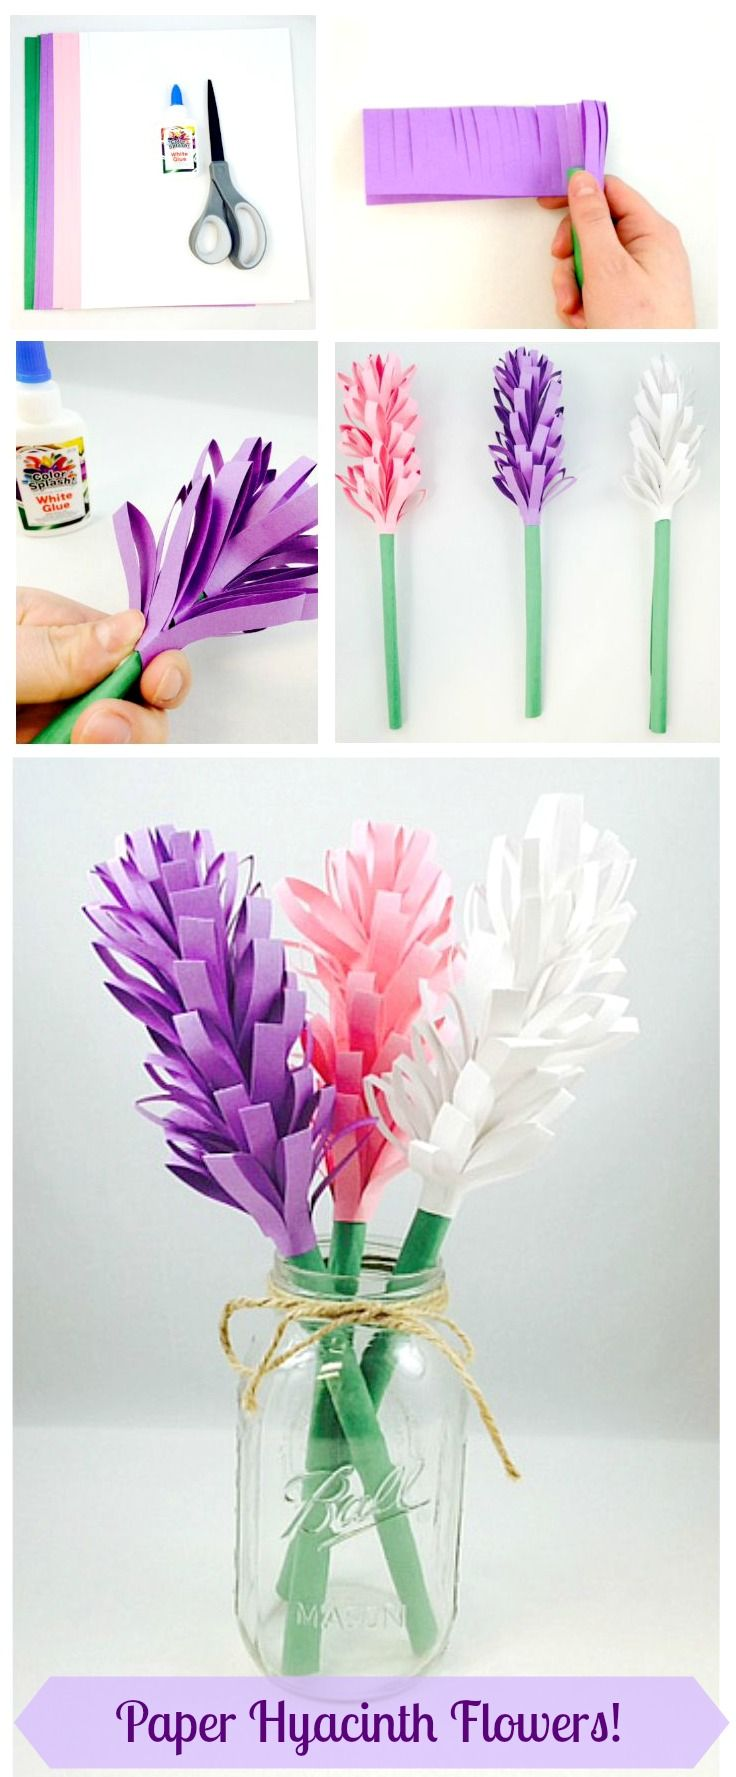 Easy Paper Hyacinth Flowers! Three materials needed for this fun Spring craft project: construction paper, scissors, and glue! We recommend our Sunworks Groundwood Construction Paper (PE1253) - it folds, scores, and curls just like more expensive brands!: